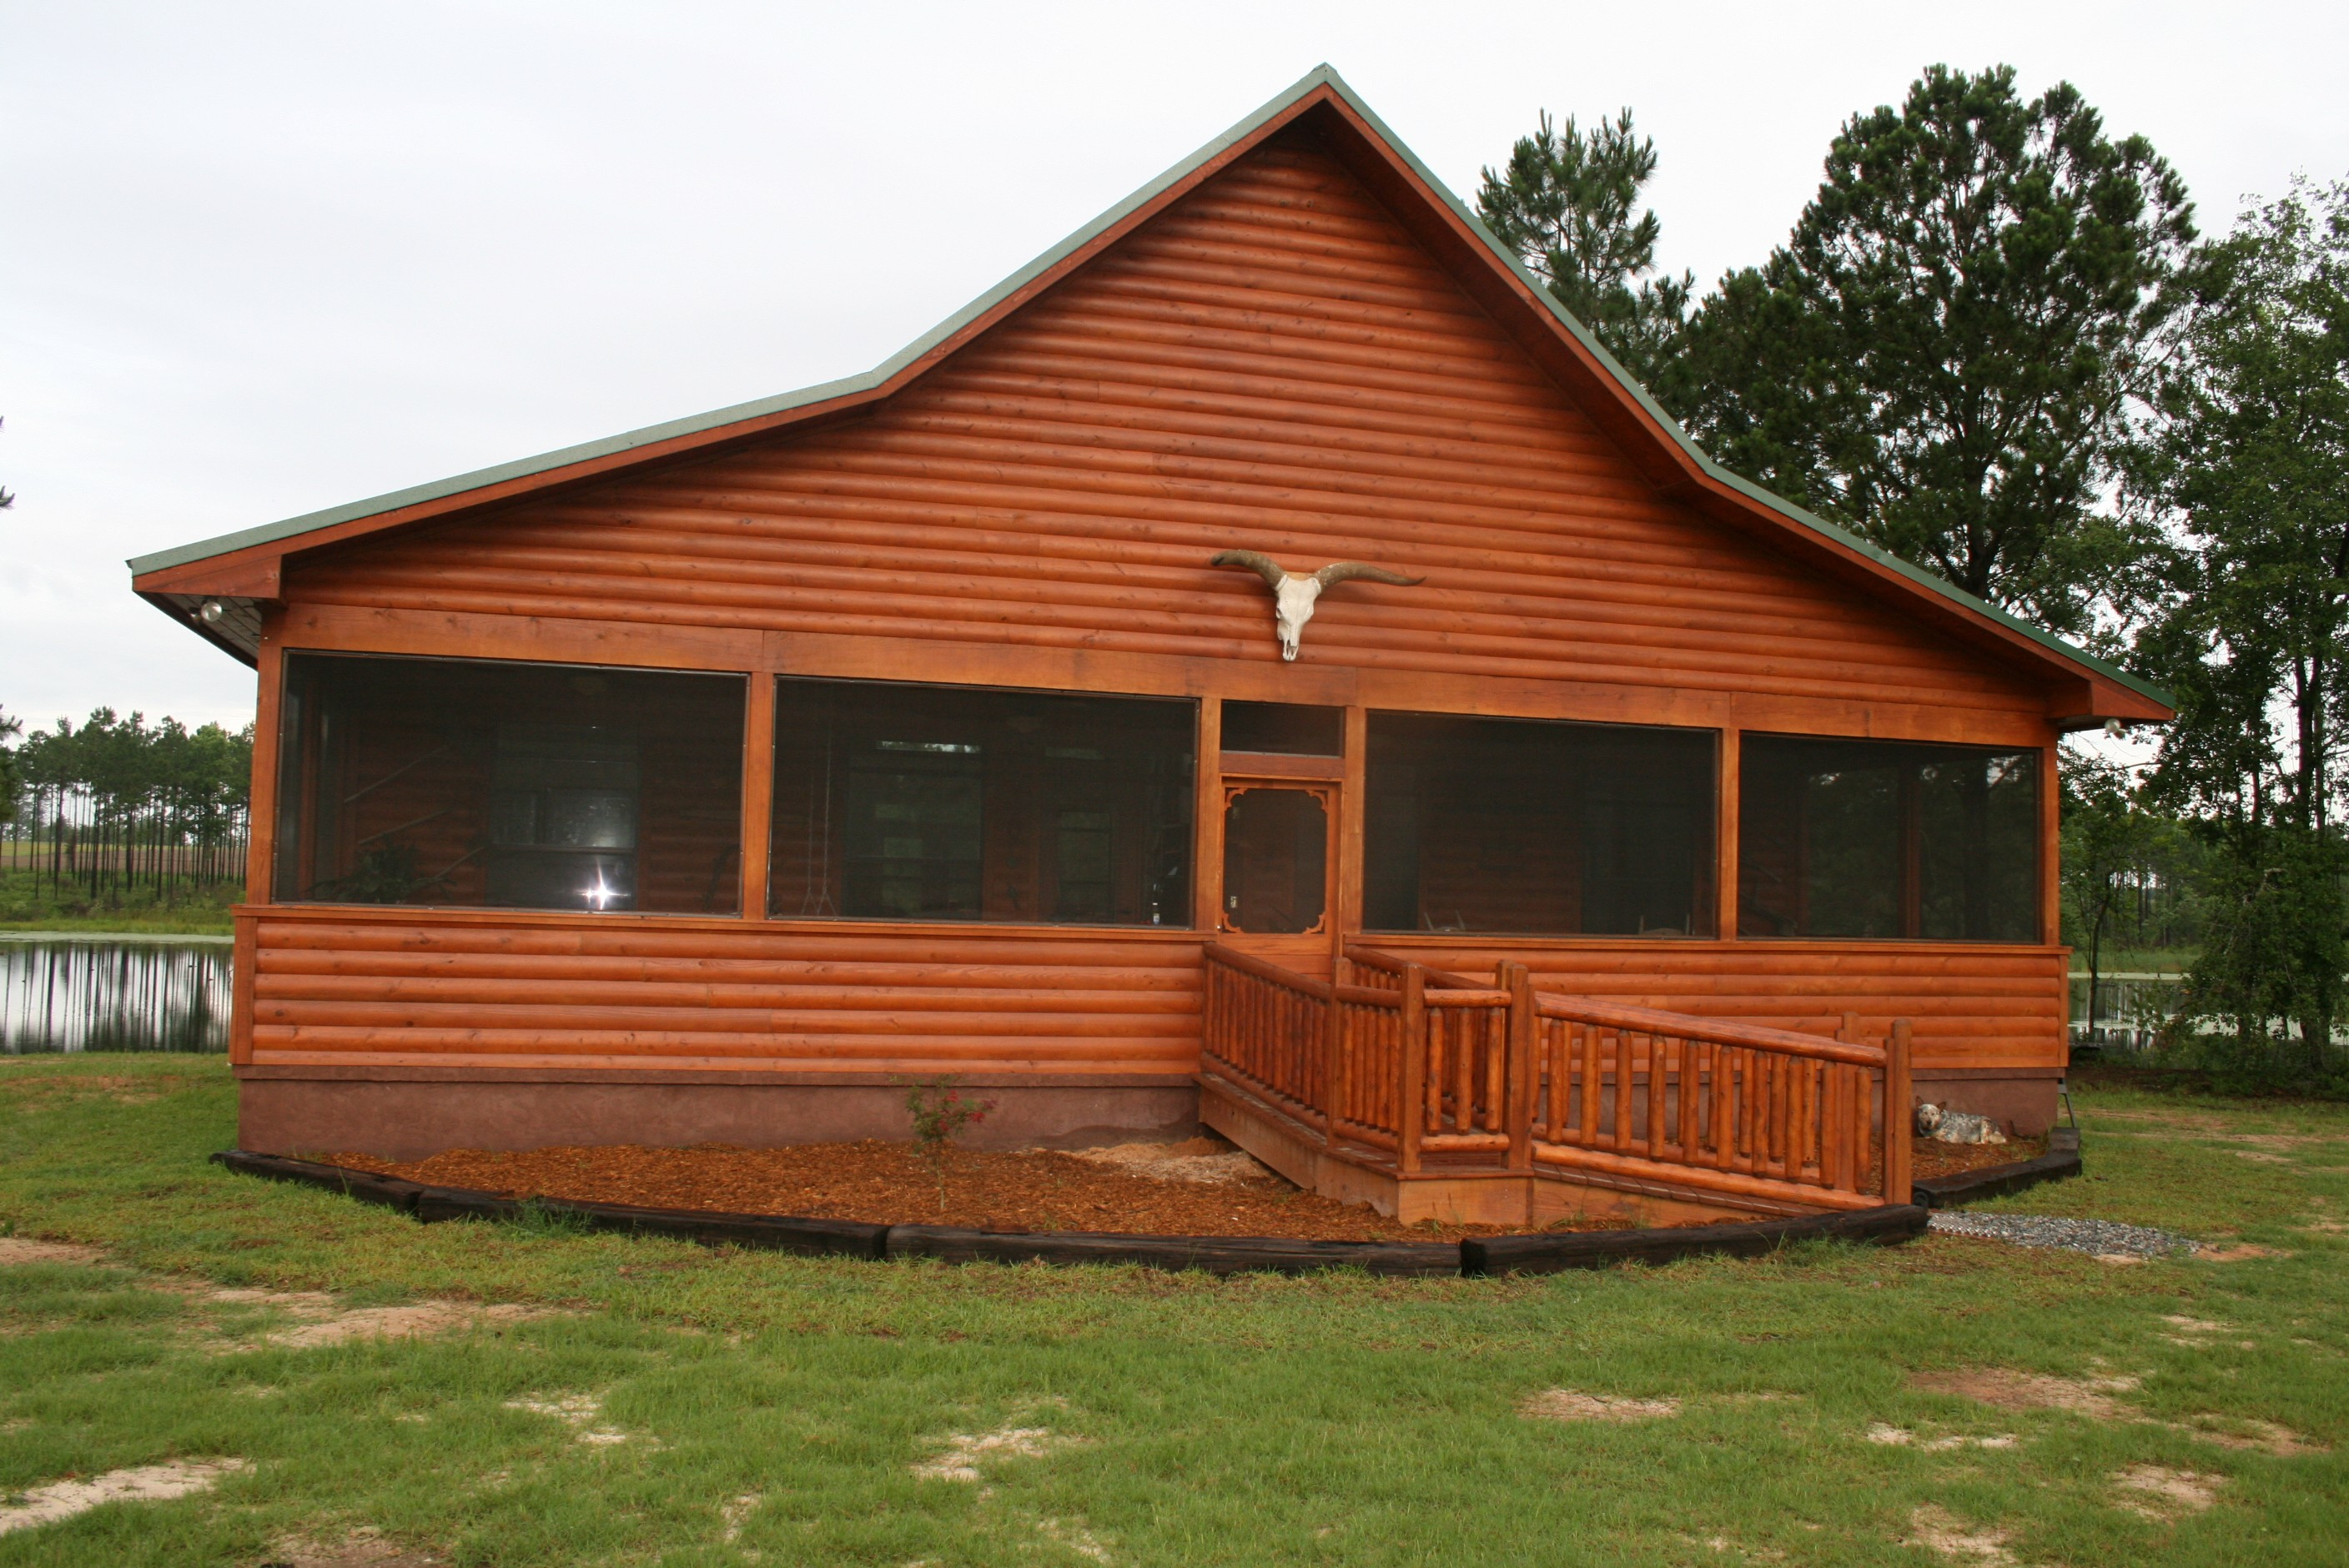 Flint River Log Homes can provide matching log siding for your new log ...